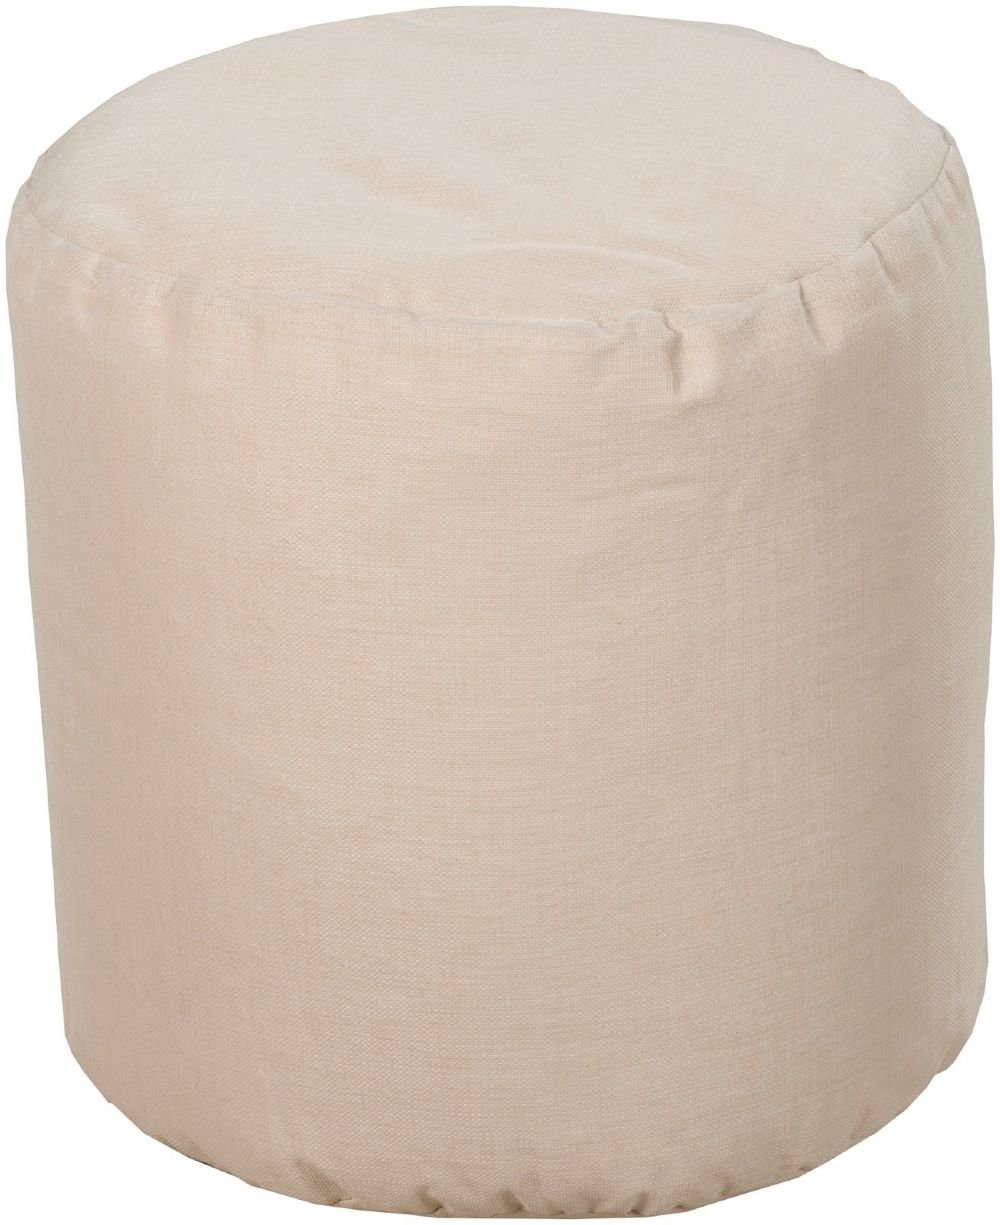 Surya Solid/Striped Round pouf/ottoman 19''x19''x22'' in Neutral Color From Surya Poufs Collection